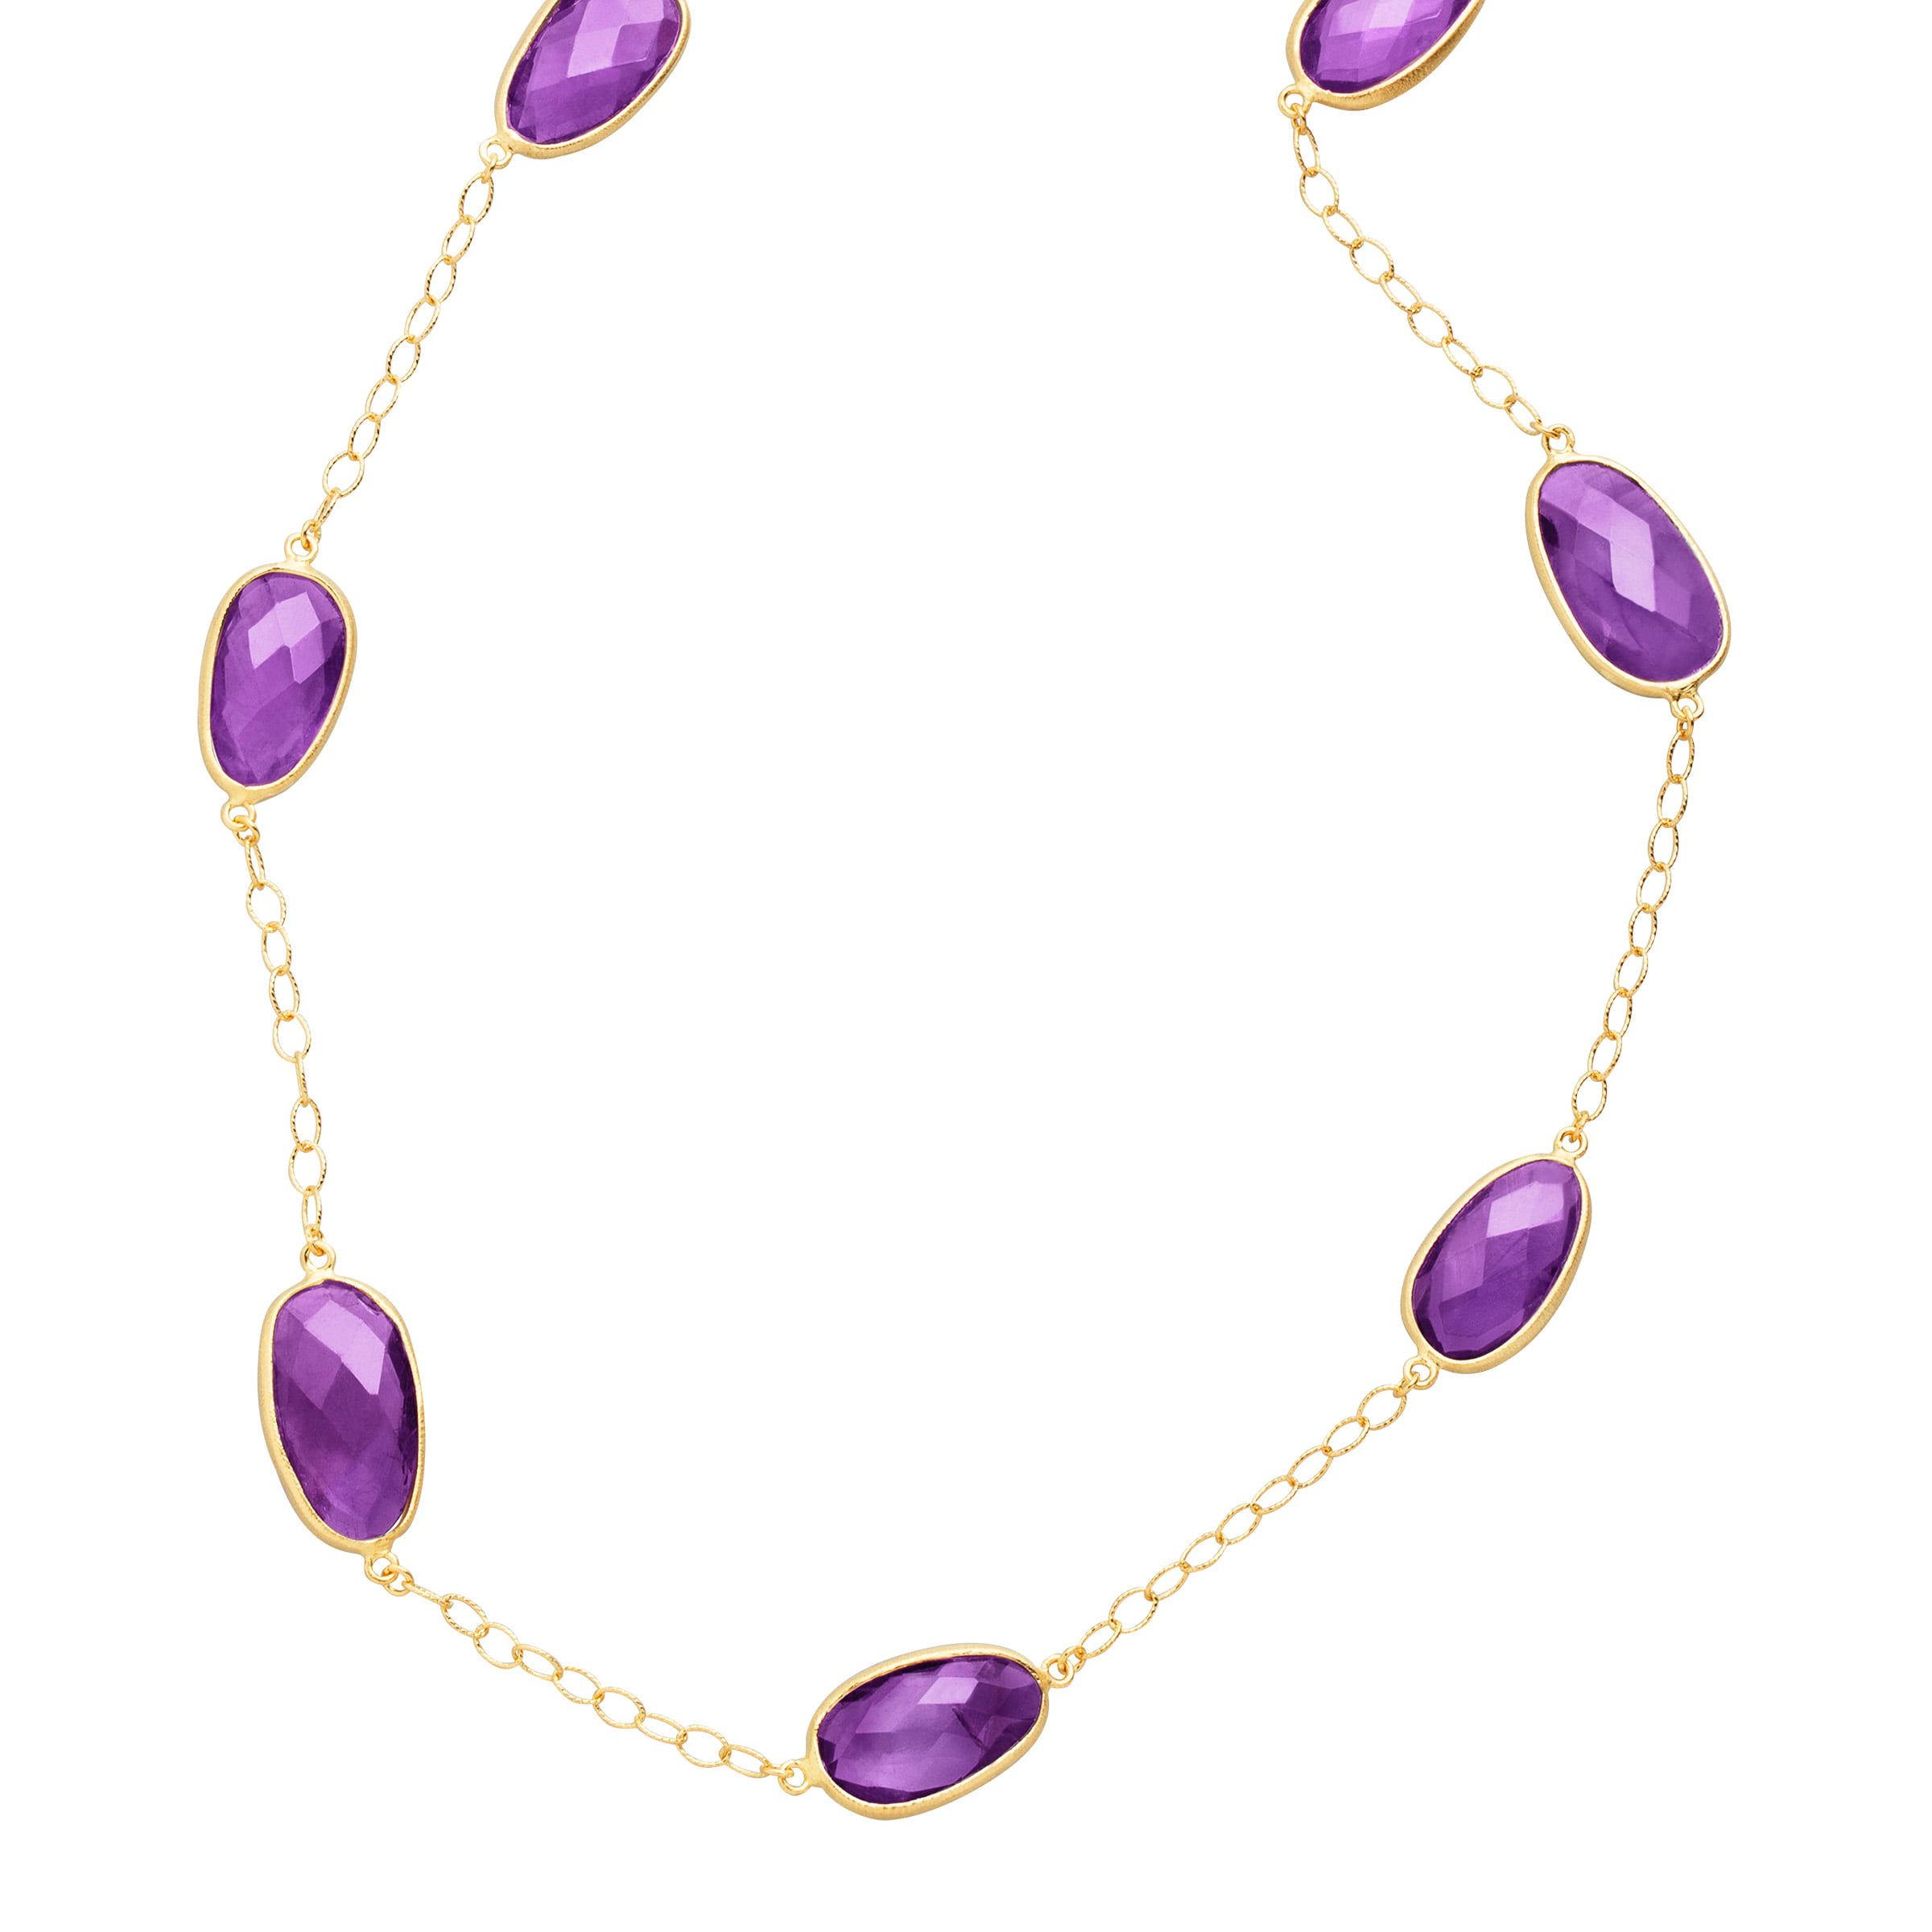 Piara 36 ct Natural Amethyst Station Necklace in 18kt Gold-Plated Sterling Silver by Richline Group